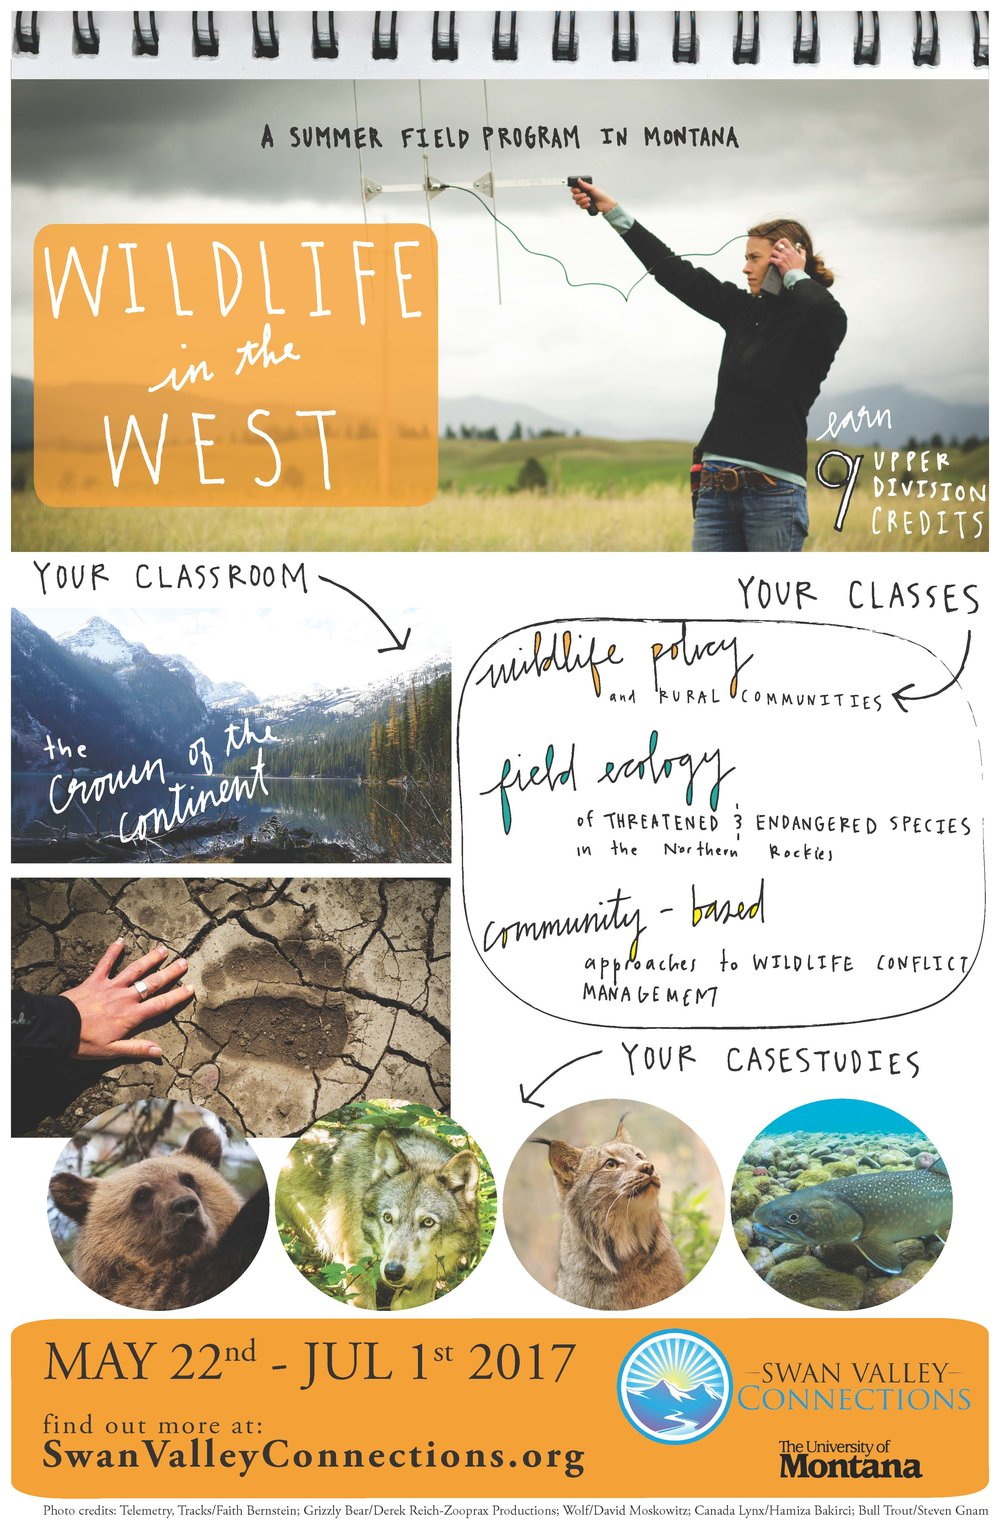 WILDLIFE IN THE WEST MAY 22 - JULY 1 A 9-credit college field program on the ecology and management of endangered species in Montana's working landscapes.